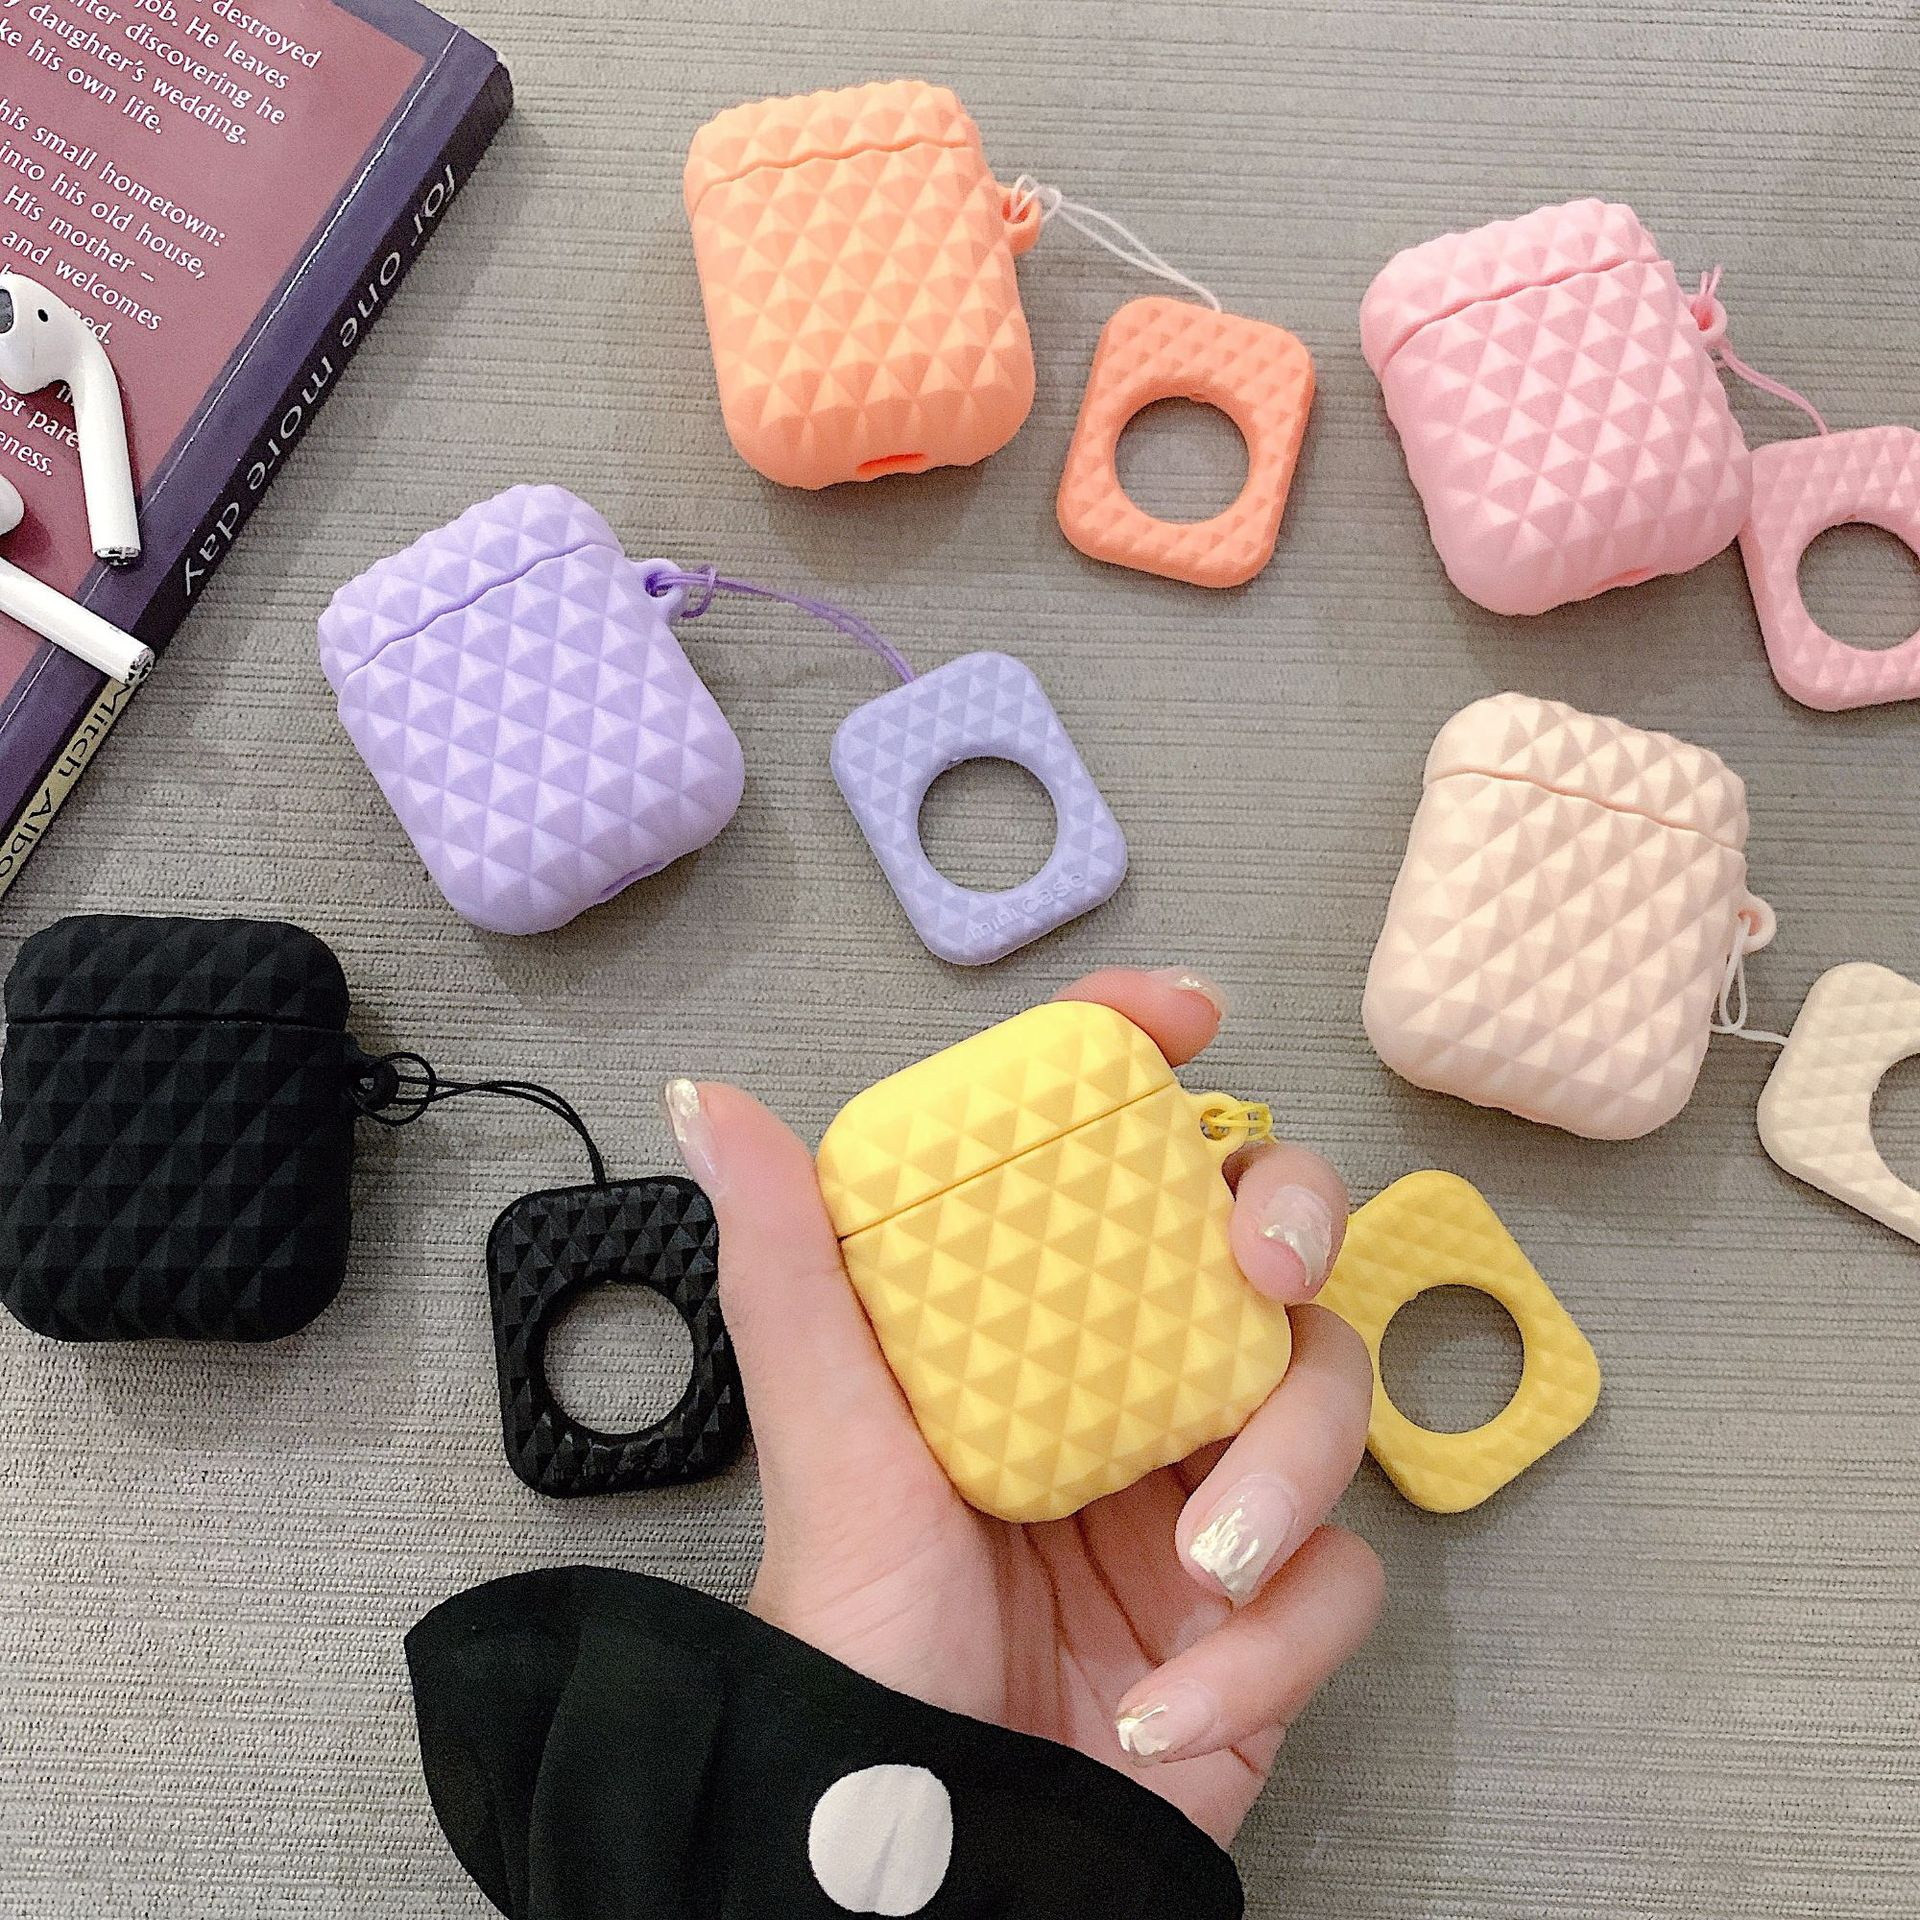 For <font><b>AirPods</b></font> <font><b>Case</b></font> <font><b>Silicone</b></font> Diamond Bag Earphone <font><b>Case</b></font> For <font><b>Airpods</b></font> 2 TWS Headphone <font><b>Case</b></font> for <font><b>Apple</b></font> Air pods Cover Earpods Ring Strap image